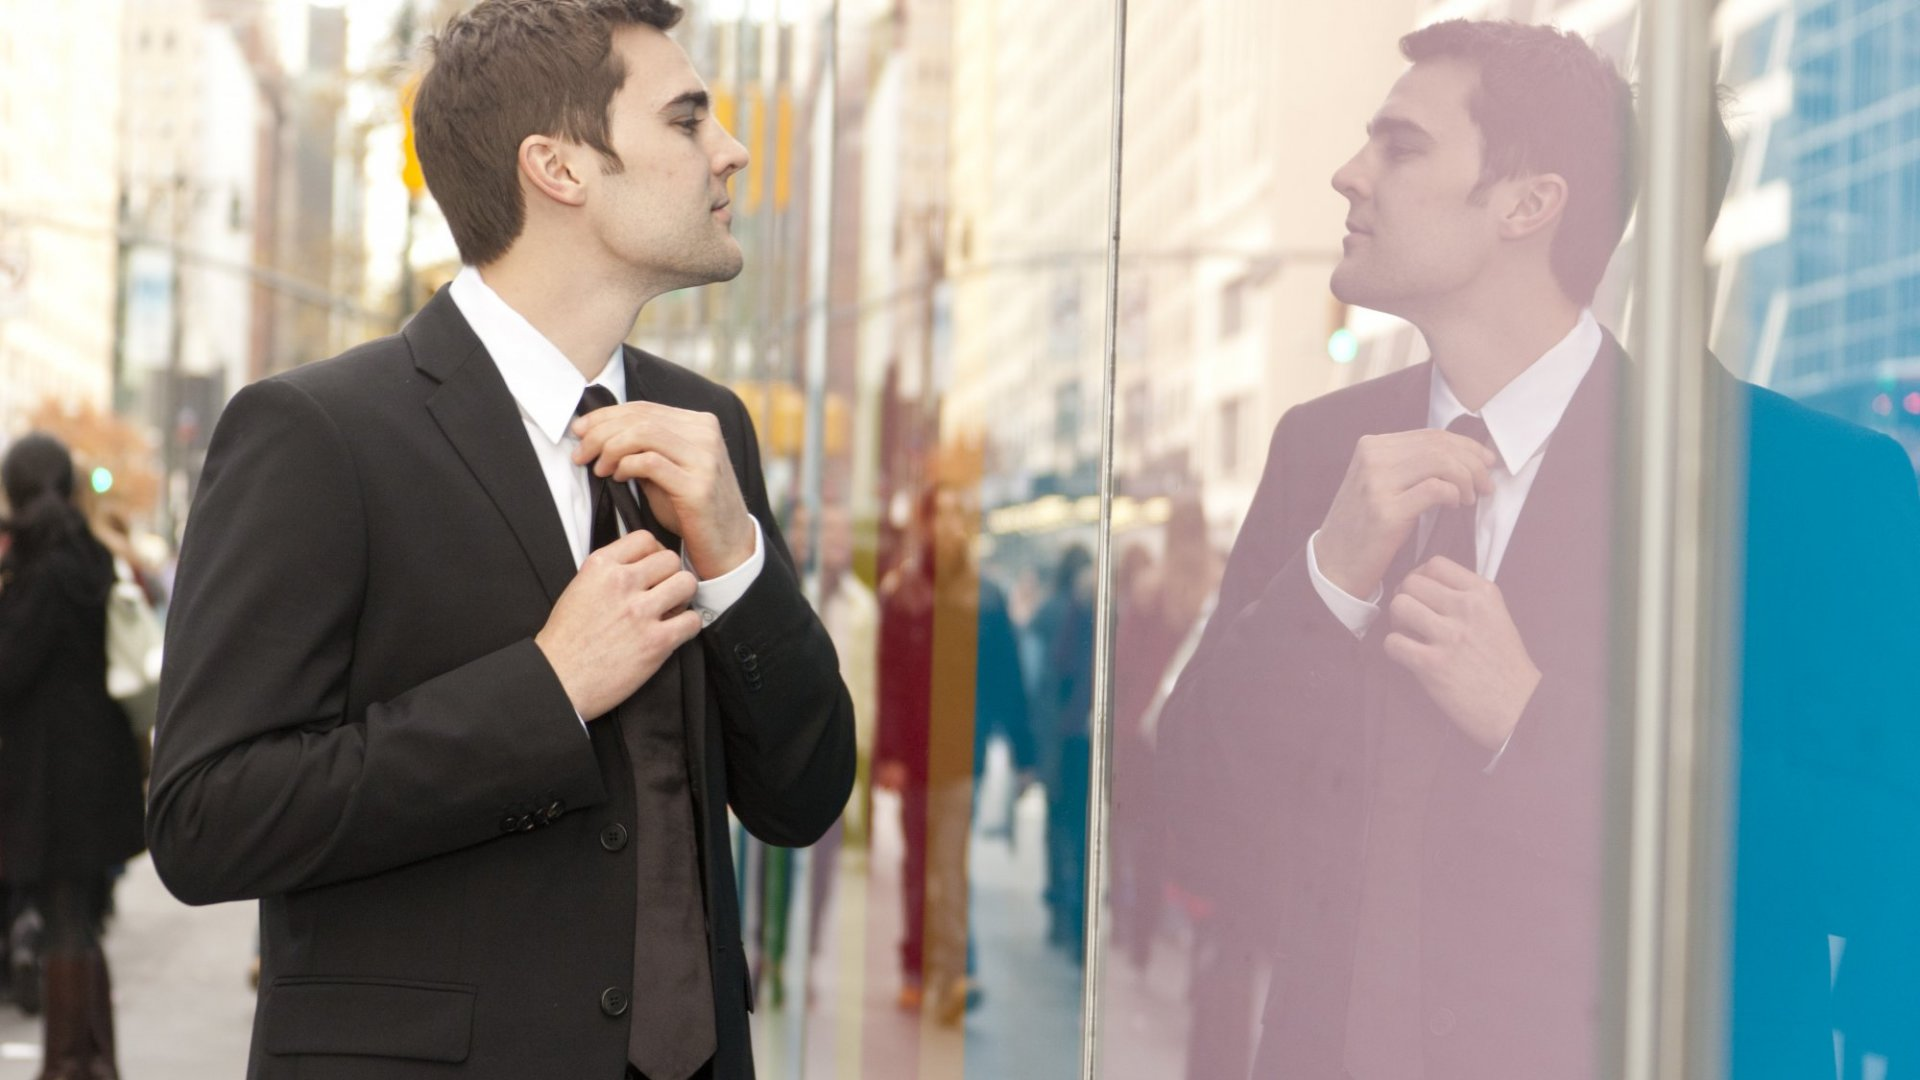 5 Ways to Avoid Displaying a Superiority Complex at Work